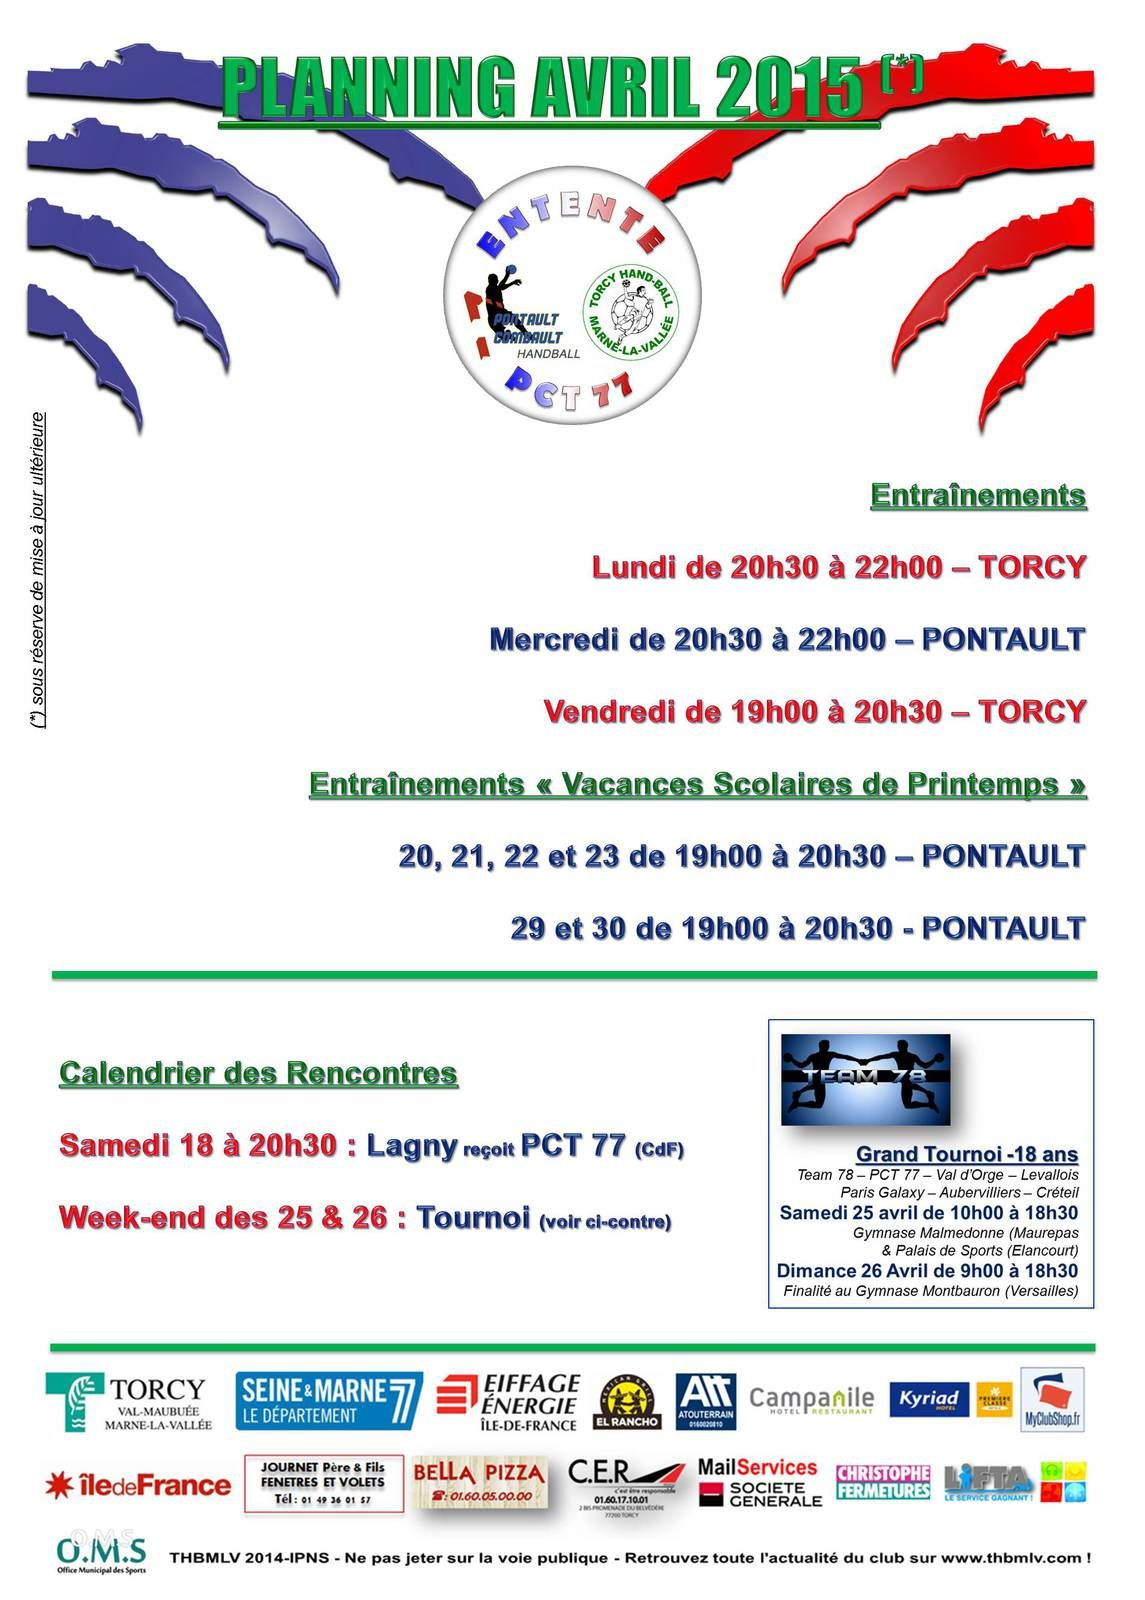 PLANNING PCT 77 -18 Ans Nationaux (Avril 2015)